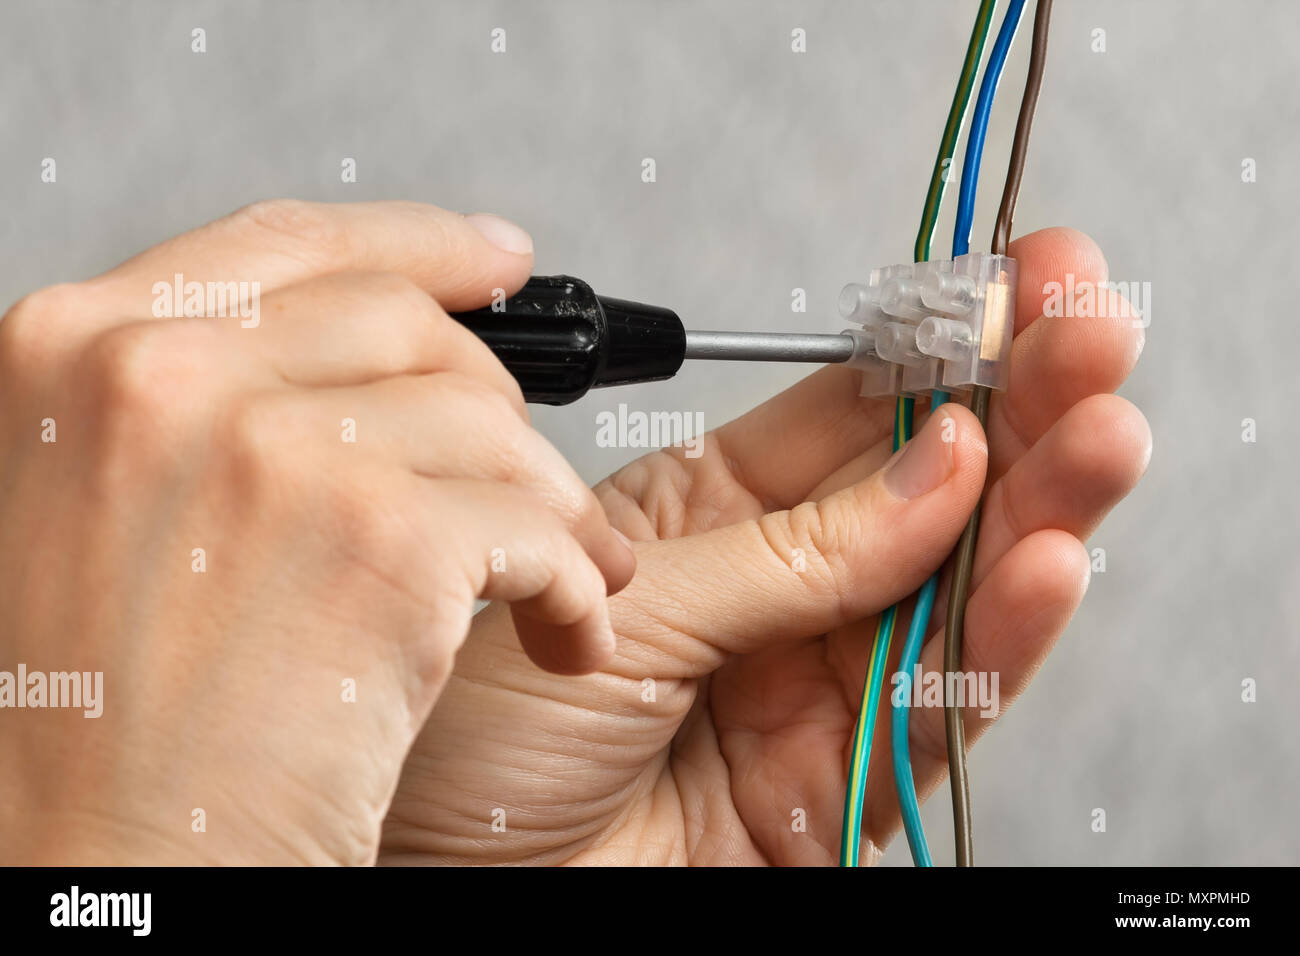 Wire Connector Terminal Block Stock Photos Home Wiring Connectors Hands Connecting Wires In With Screwdriver Image